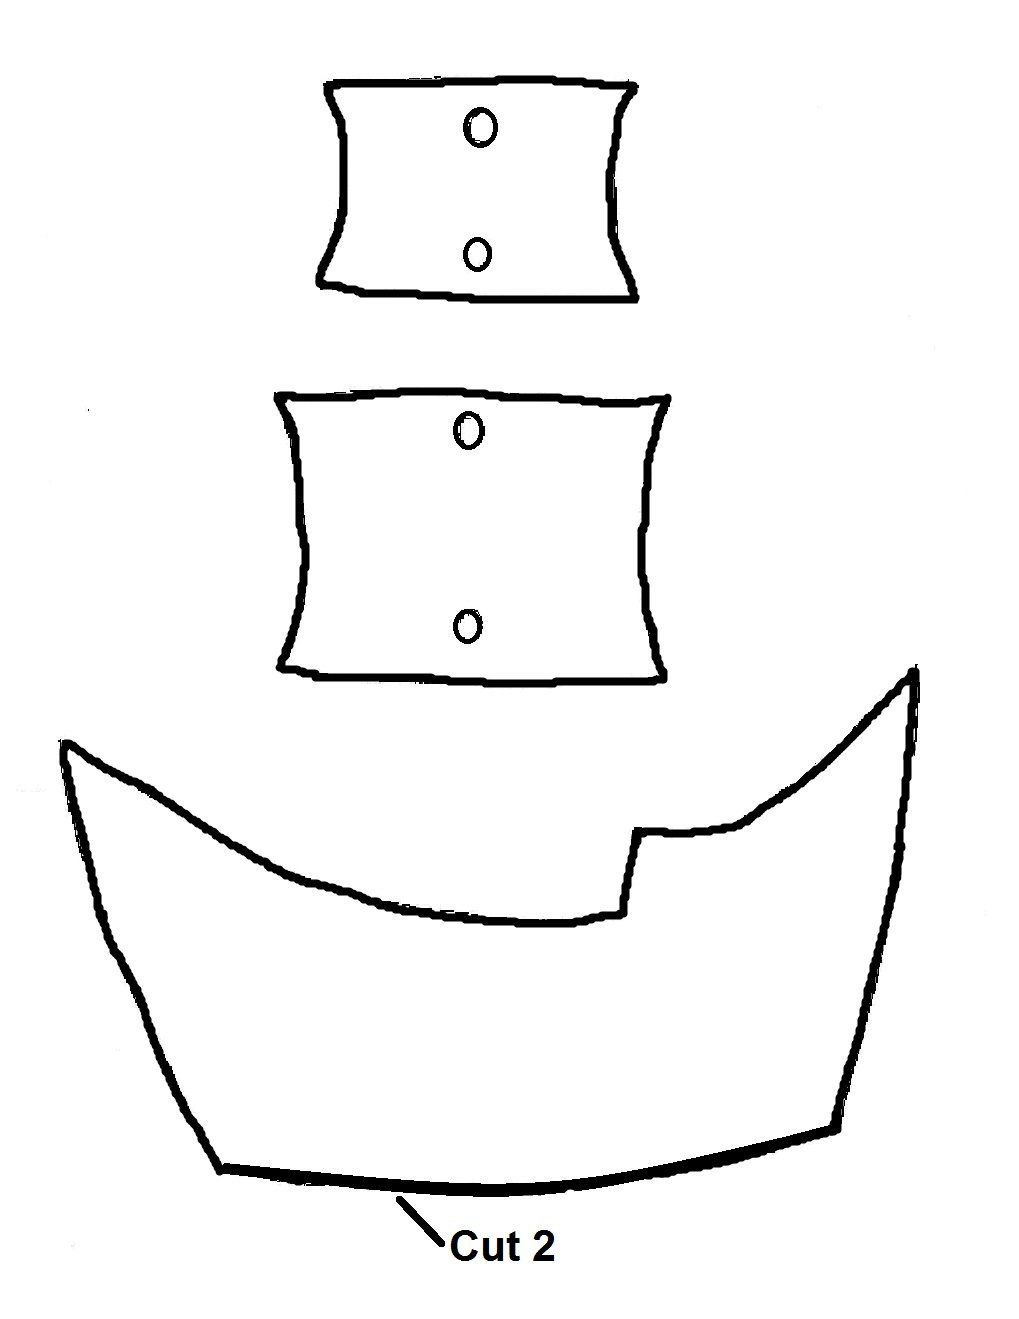 mayflower coloring pages for preschool - photo#21